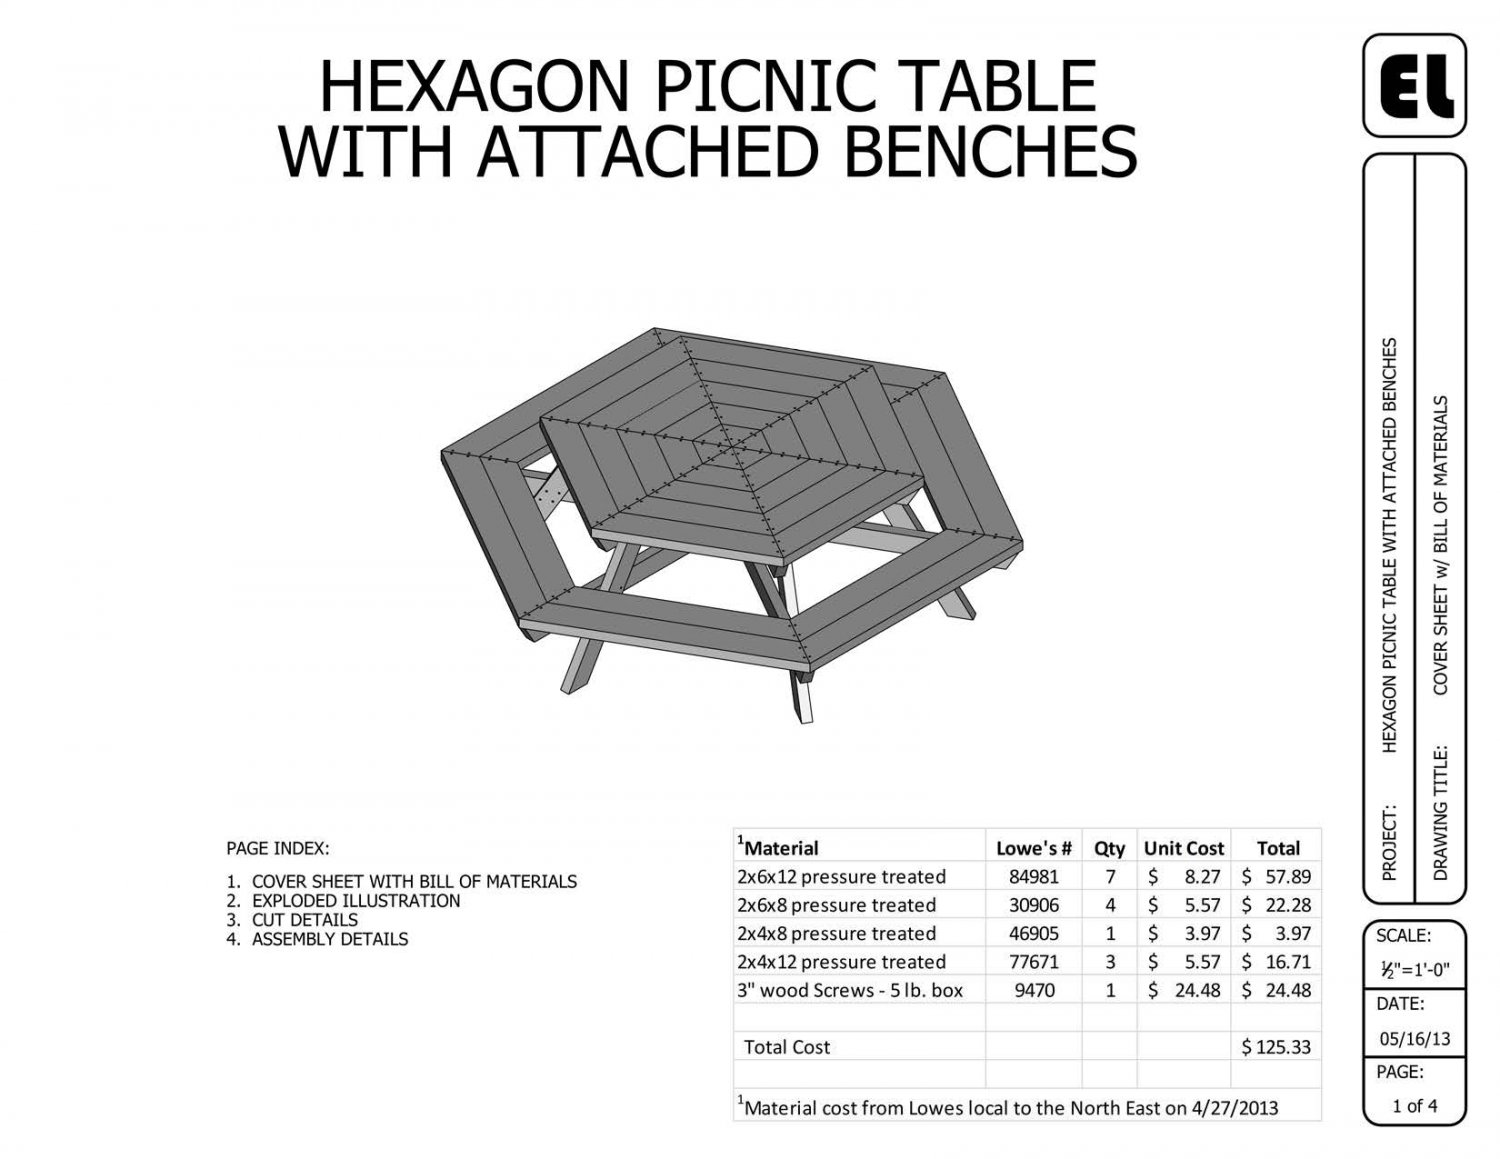 Do It Yourself House Drafting: 5' Hexagon Picnic Table Building Plans Blueprints DIY Do